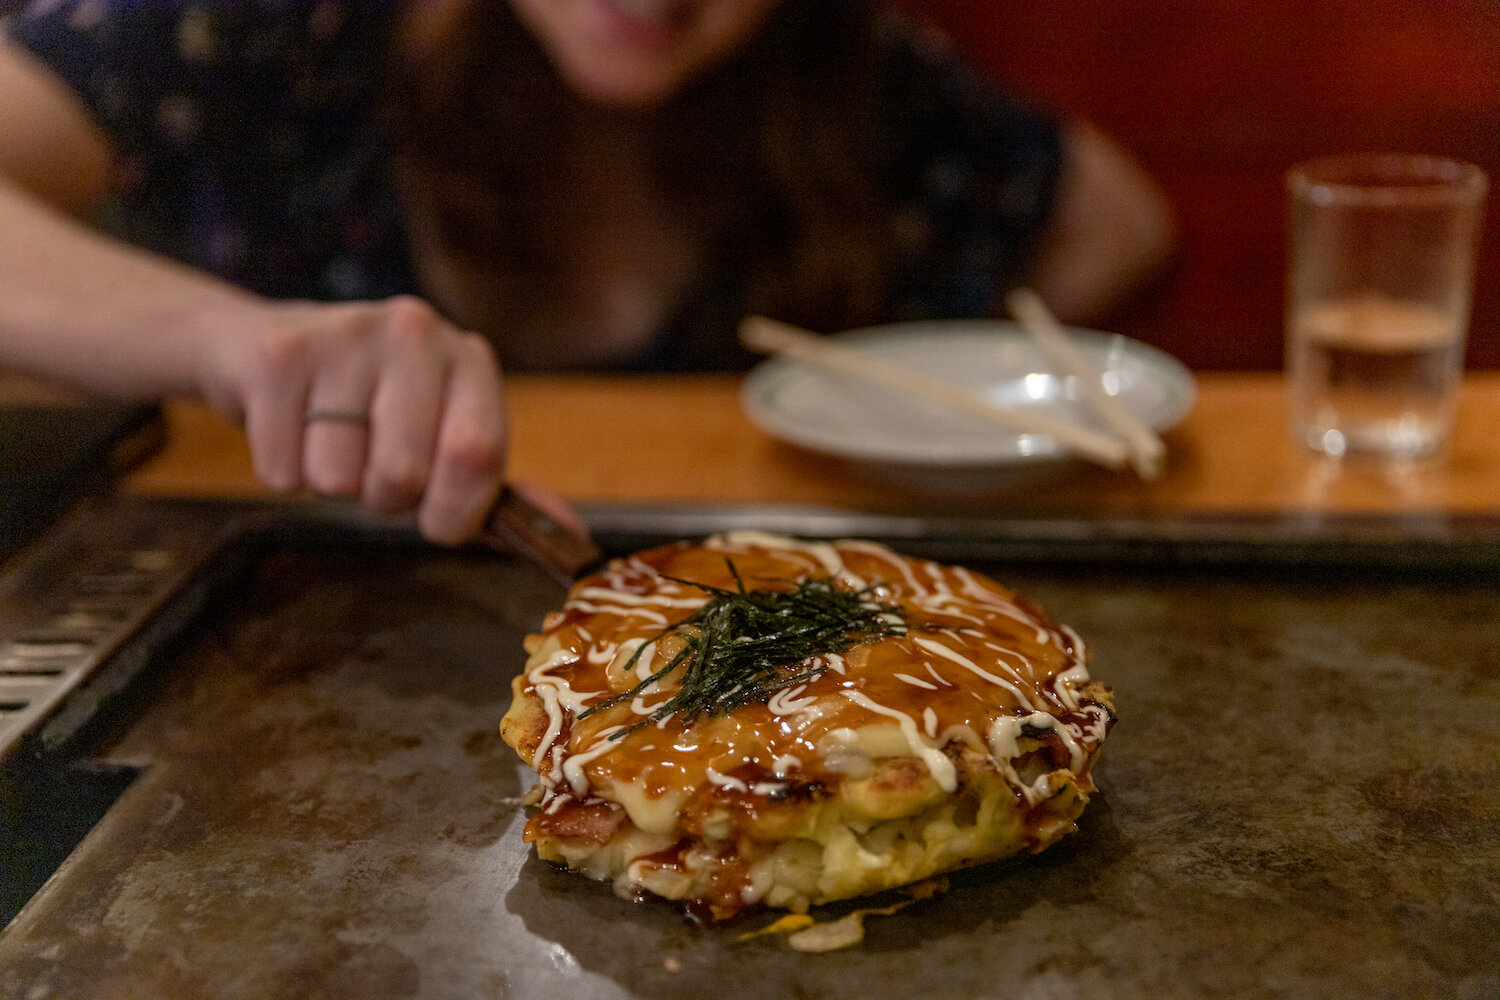 The Japanese pancake, Okonomiyaki is a specialty food in Osaka and the making of it can be an Osaka restaurant show.